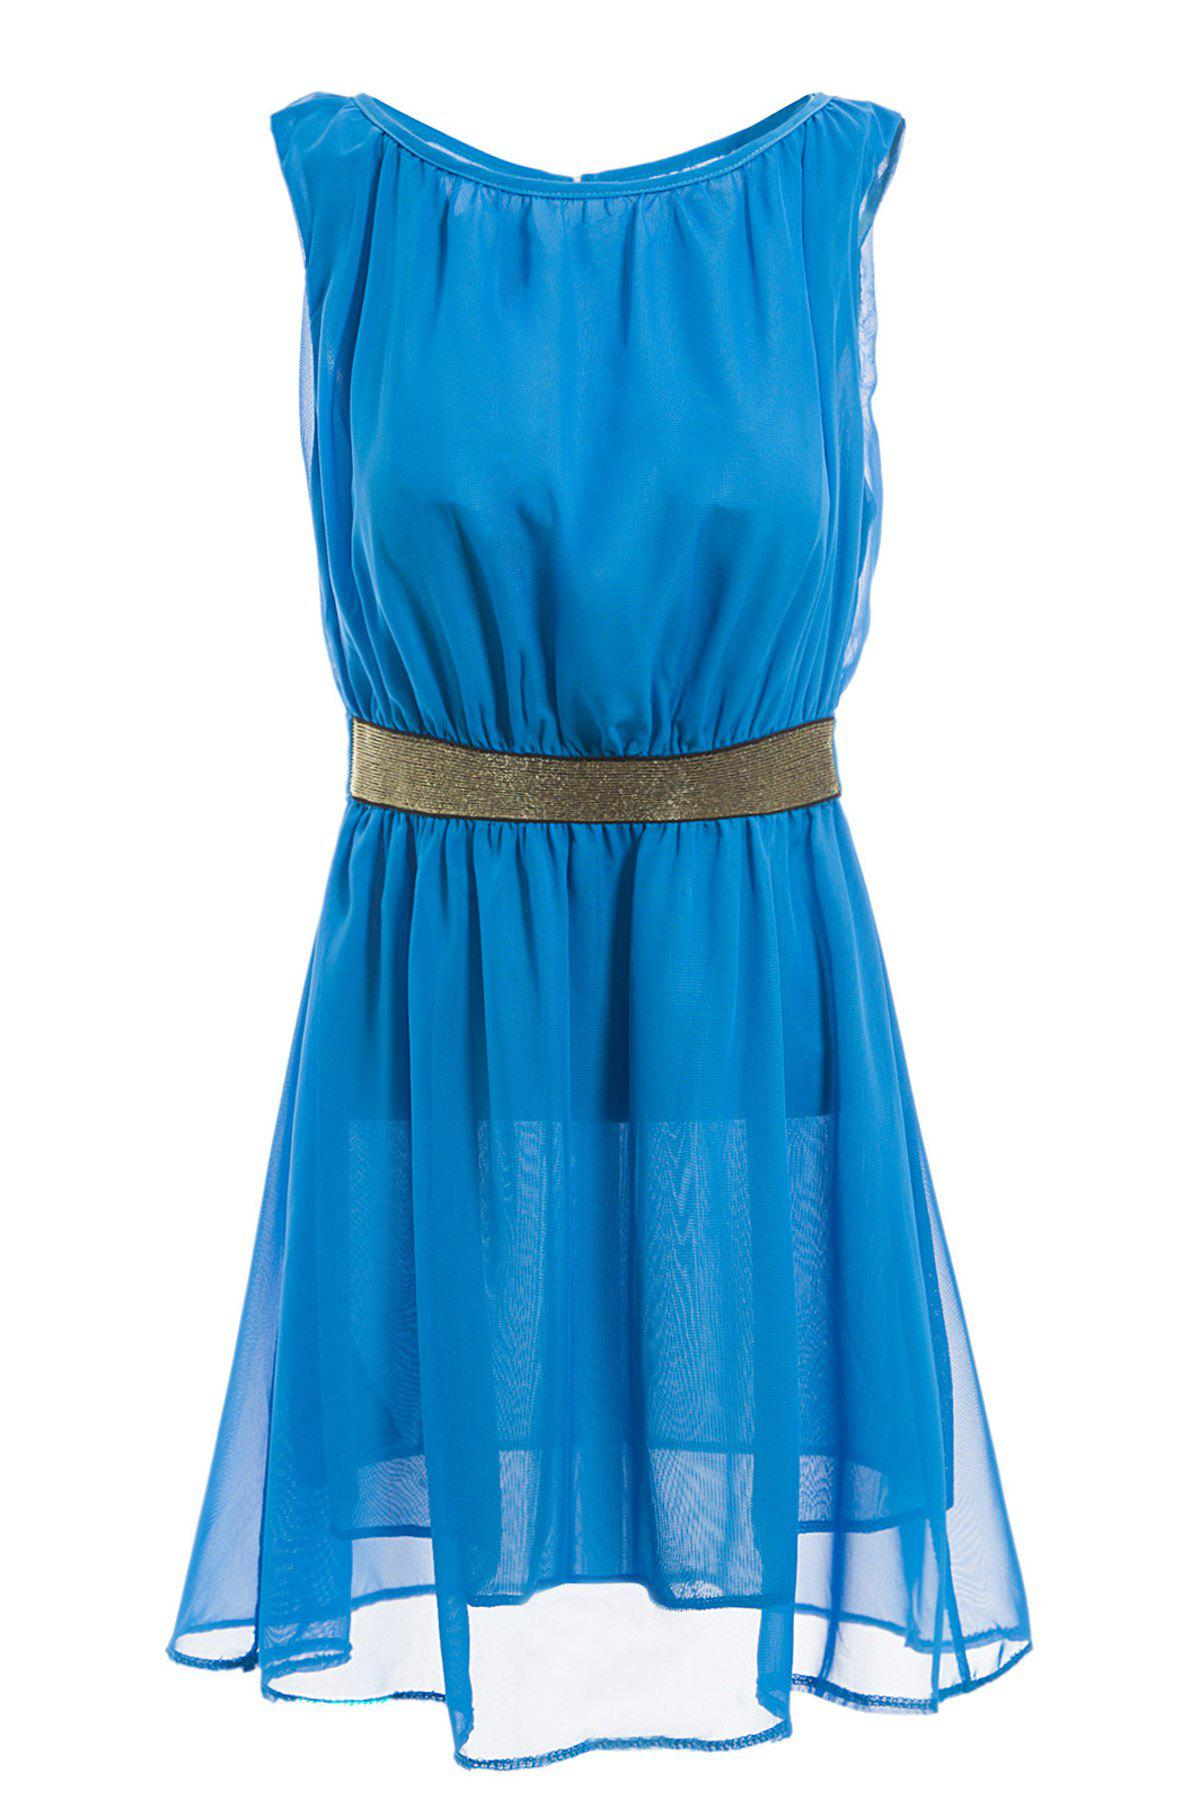 Latest Cut Out Sleeveless Round Neck See-Through Ladylike Style Chiffon Women's Dress